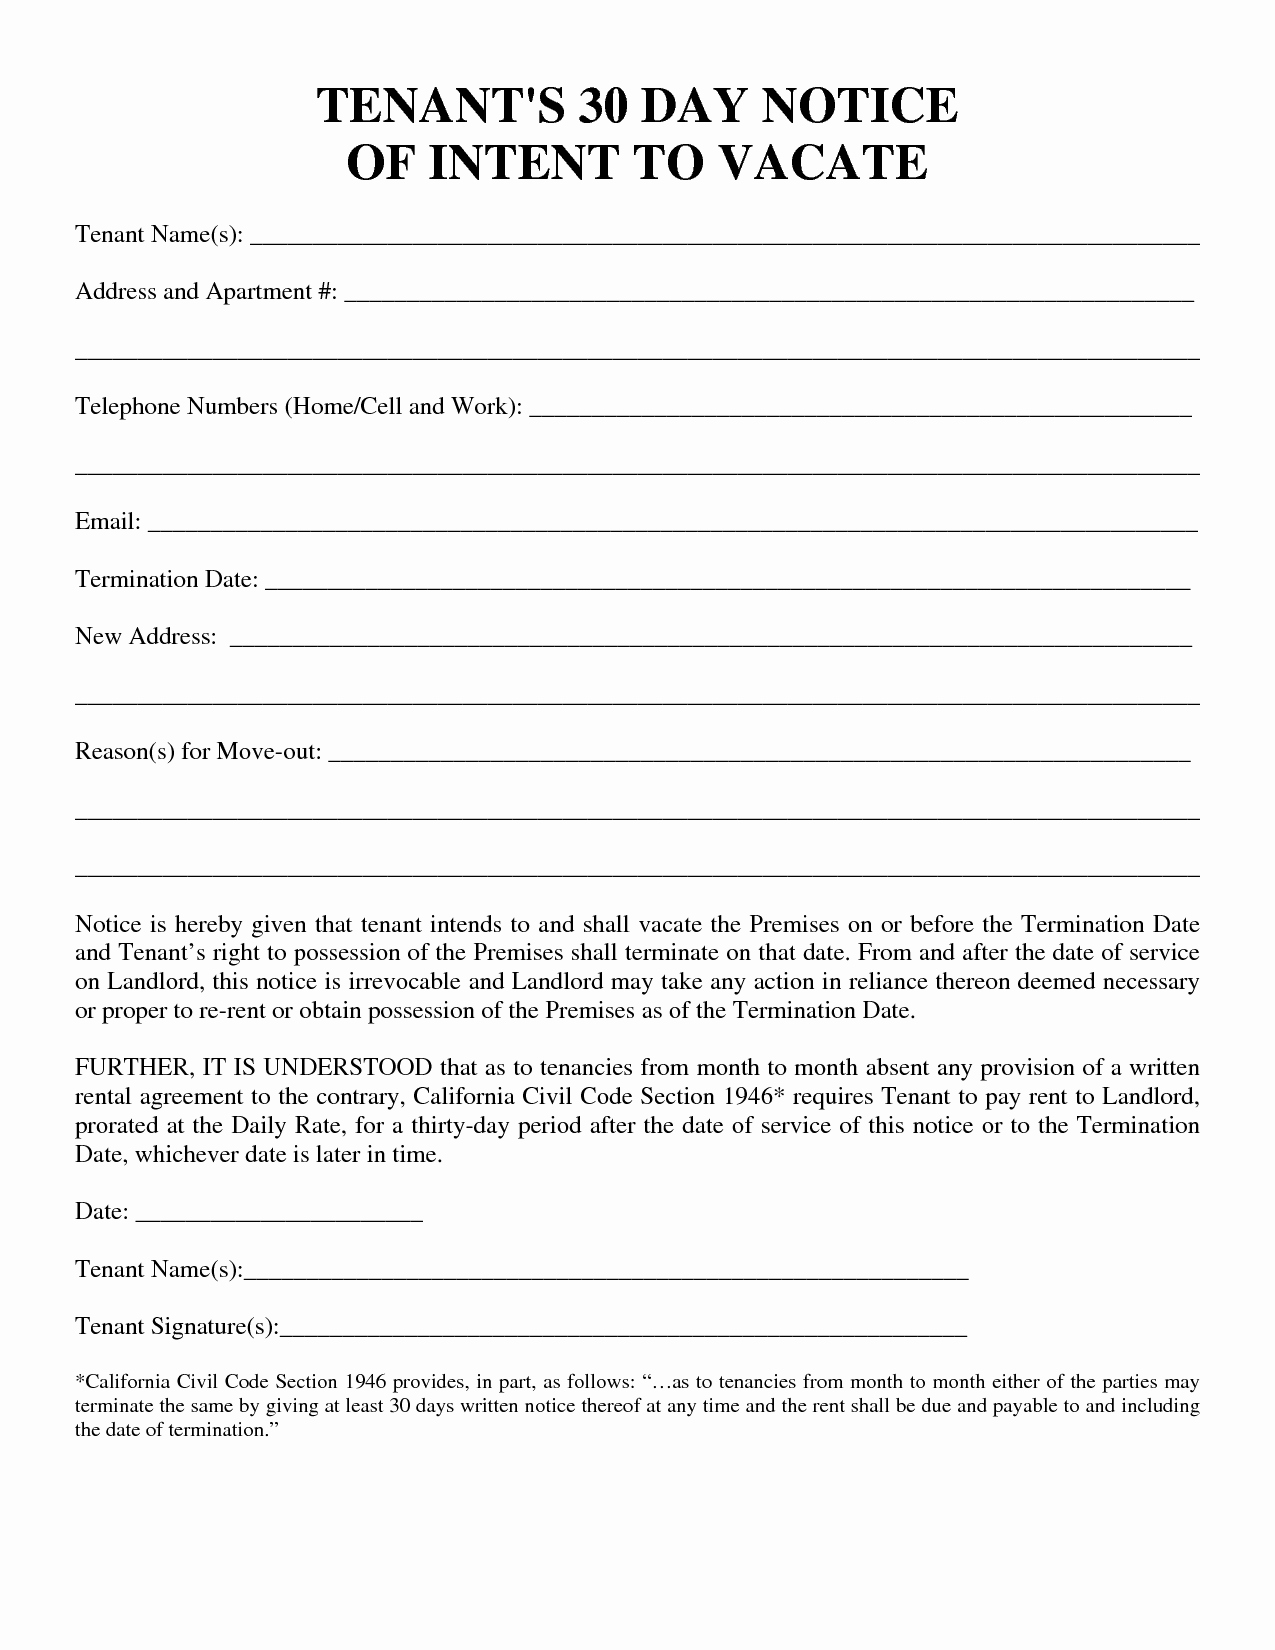 Landlord Notice to Vacate Beautiful 30 Day Notice to Vacate Template